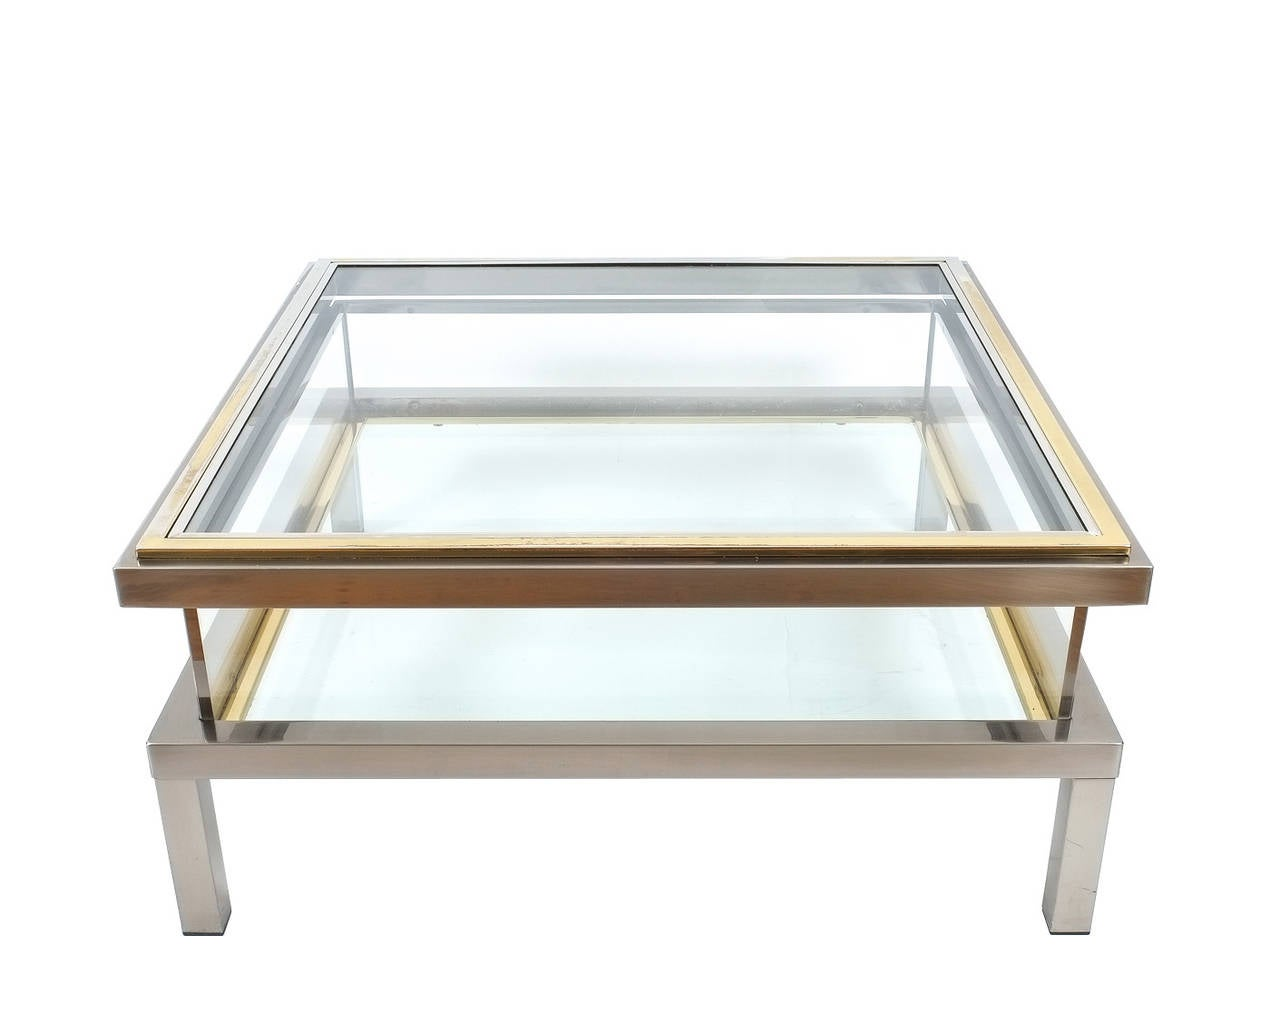 Elegant Romeo Rega Brass And Chrome Coffee Table With Interior Display At 1stdibs